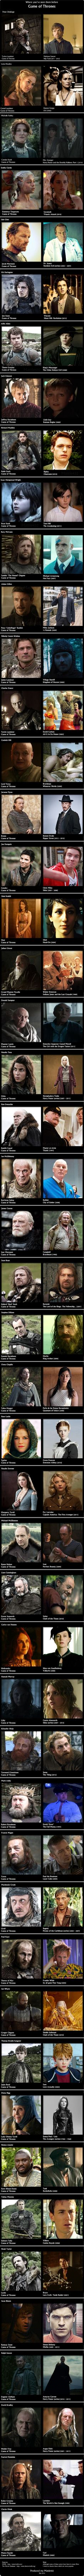 Game of Throne Characters  Where you've seen them before.